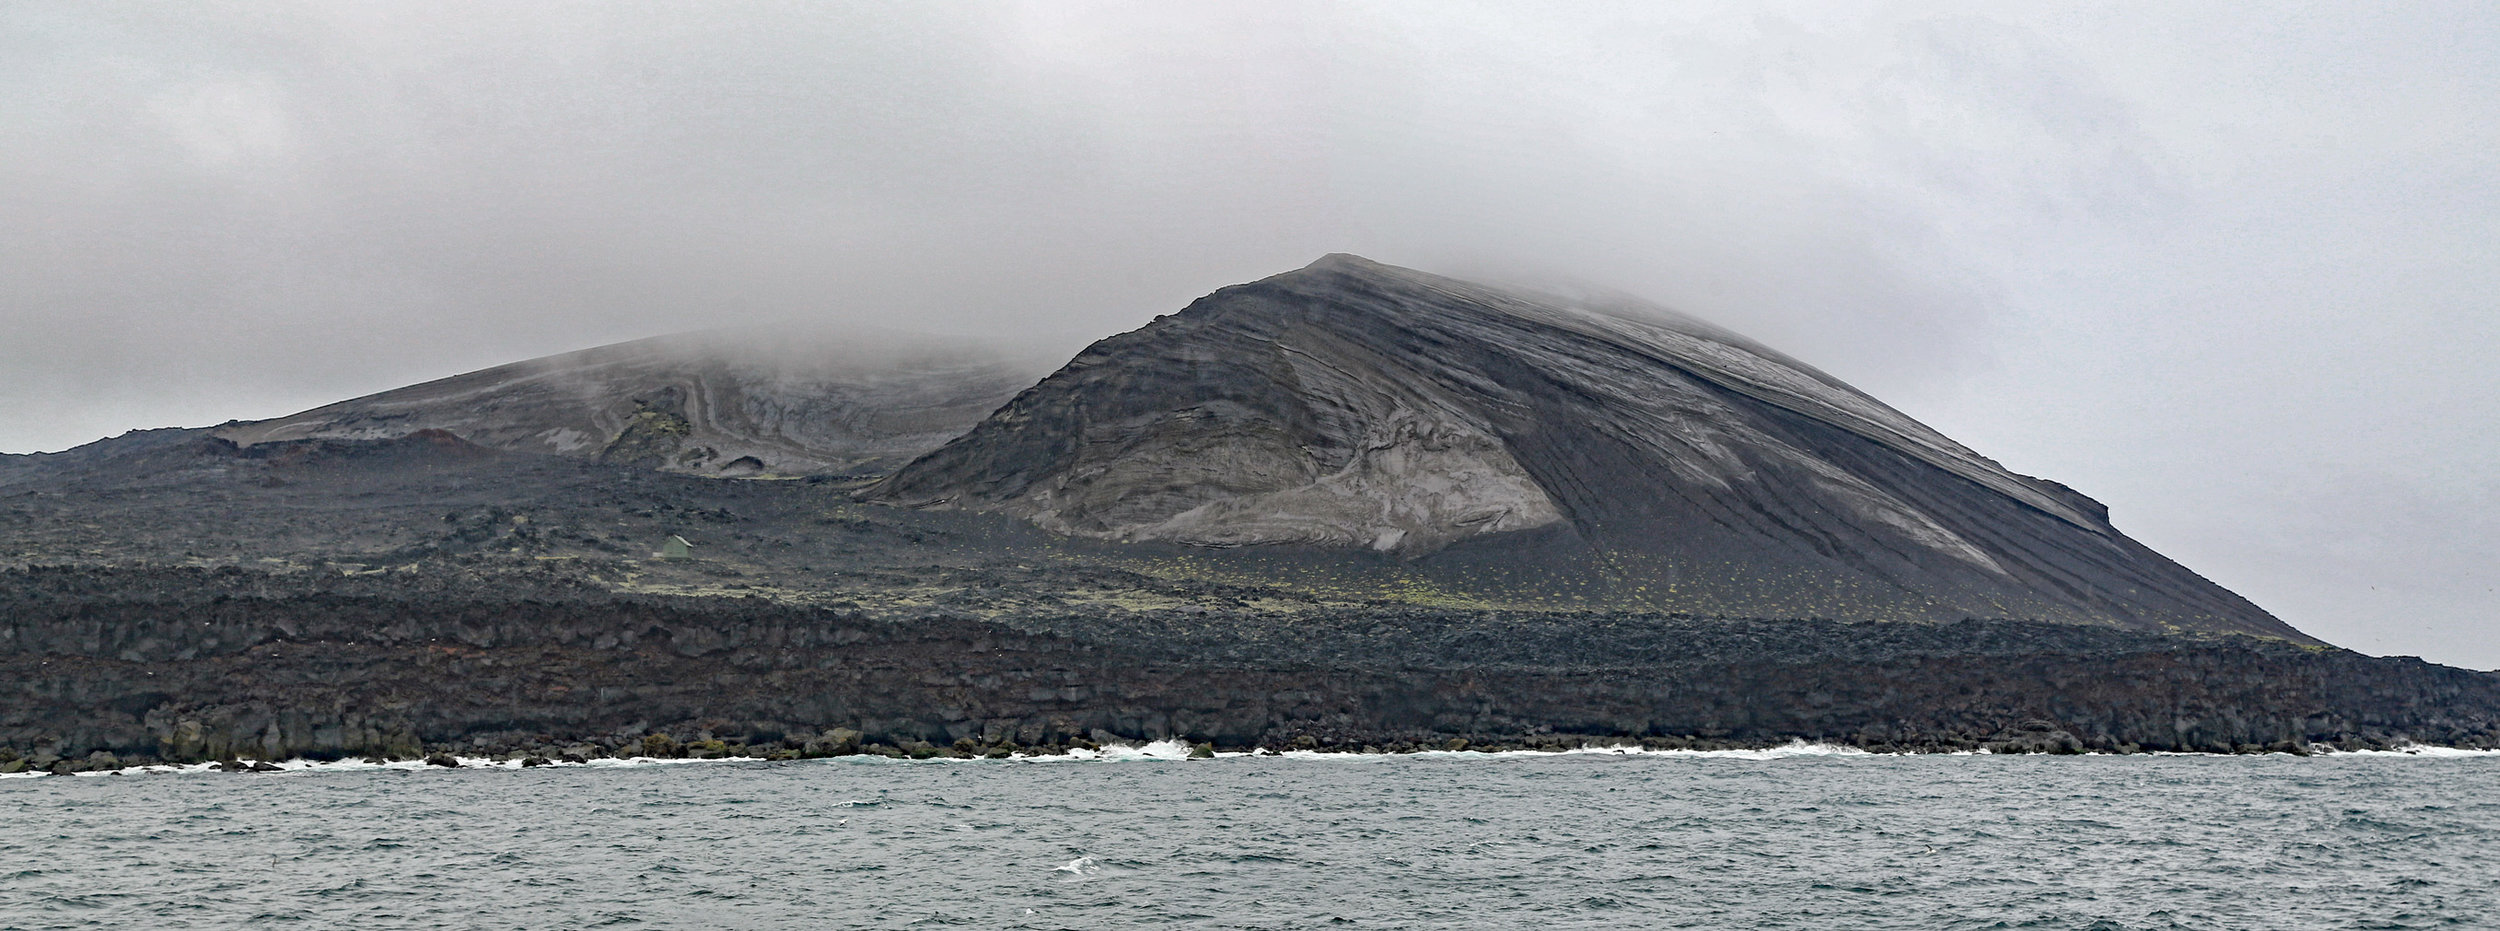 Surtsey volcano in the Vestmannaeyjar archipelago off southern Iceland.